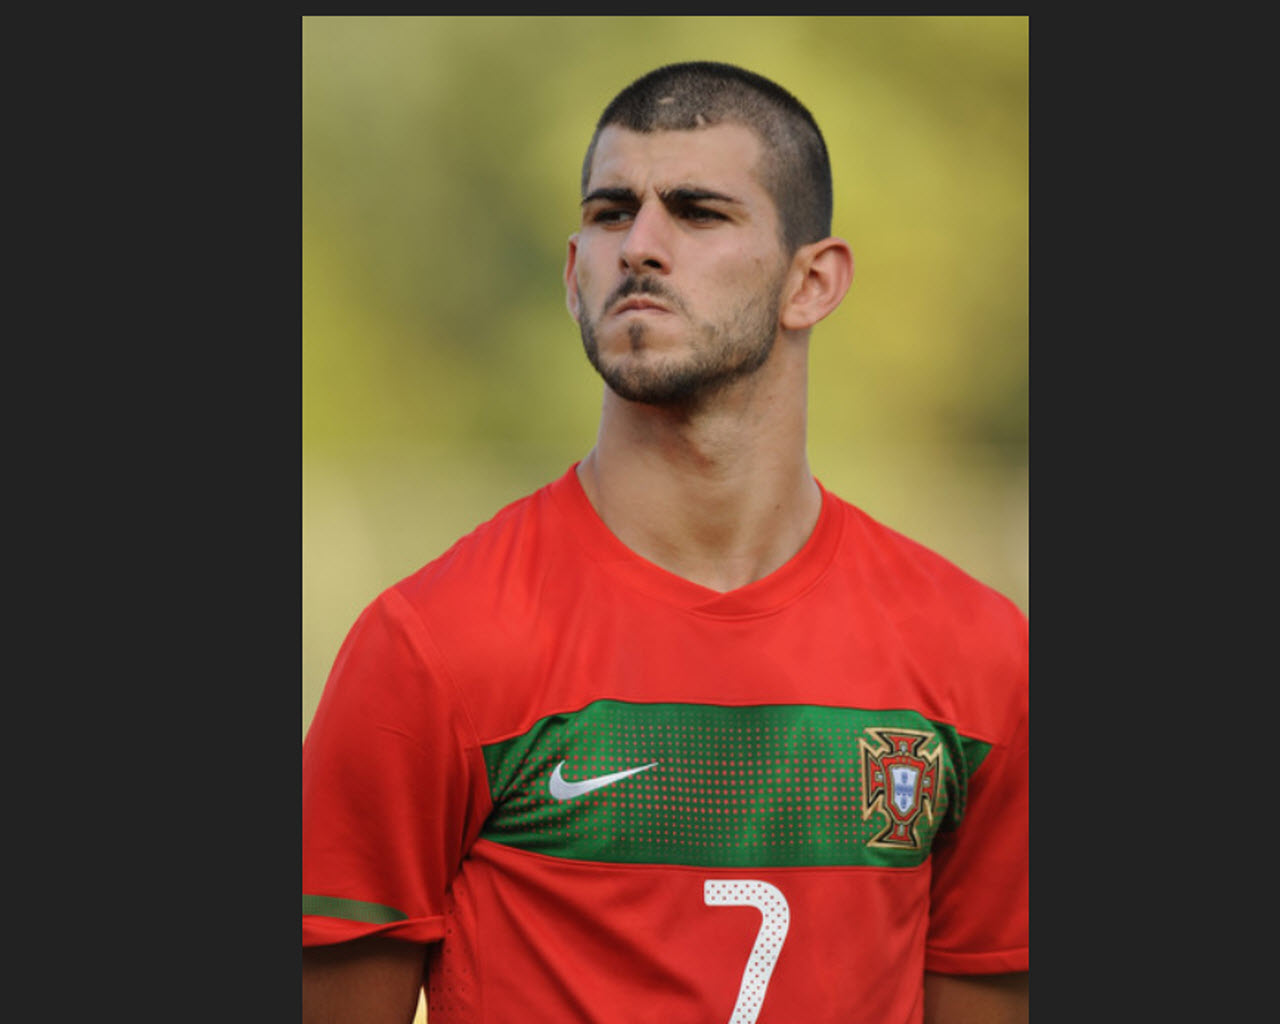 nelson-oliveira-hairstyles1